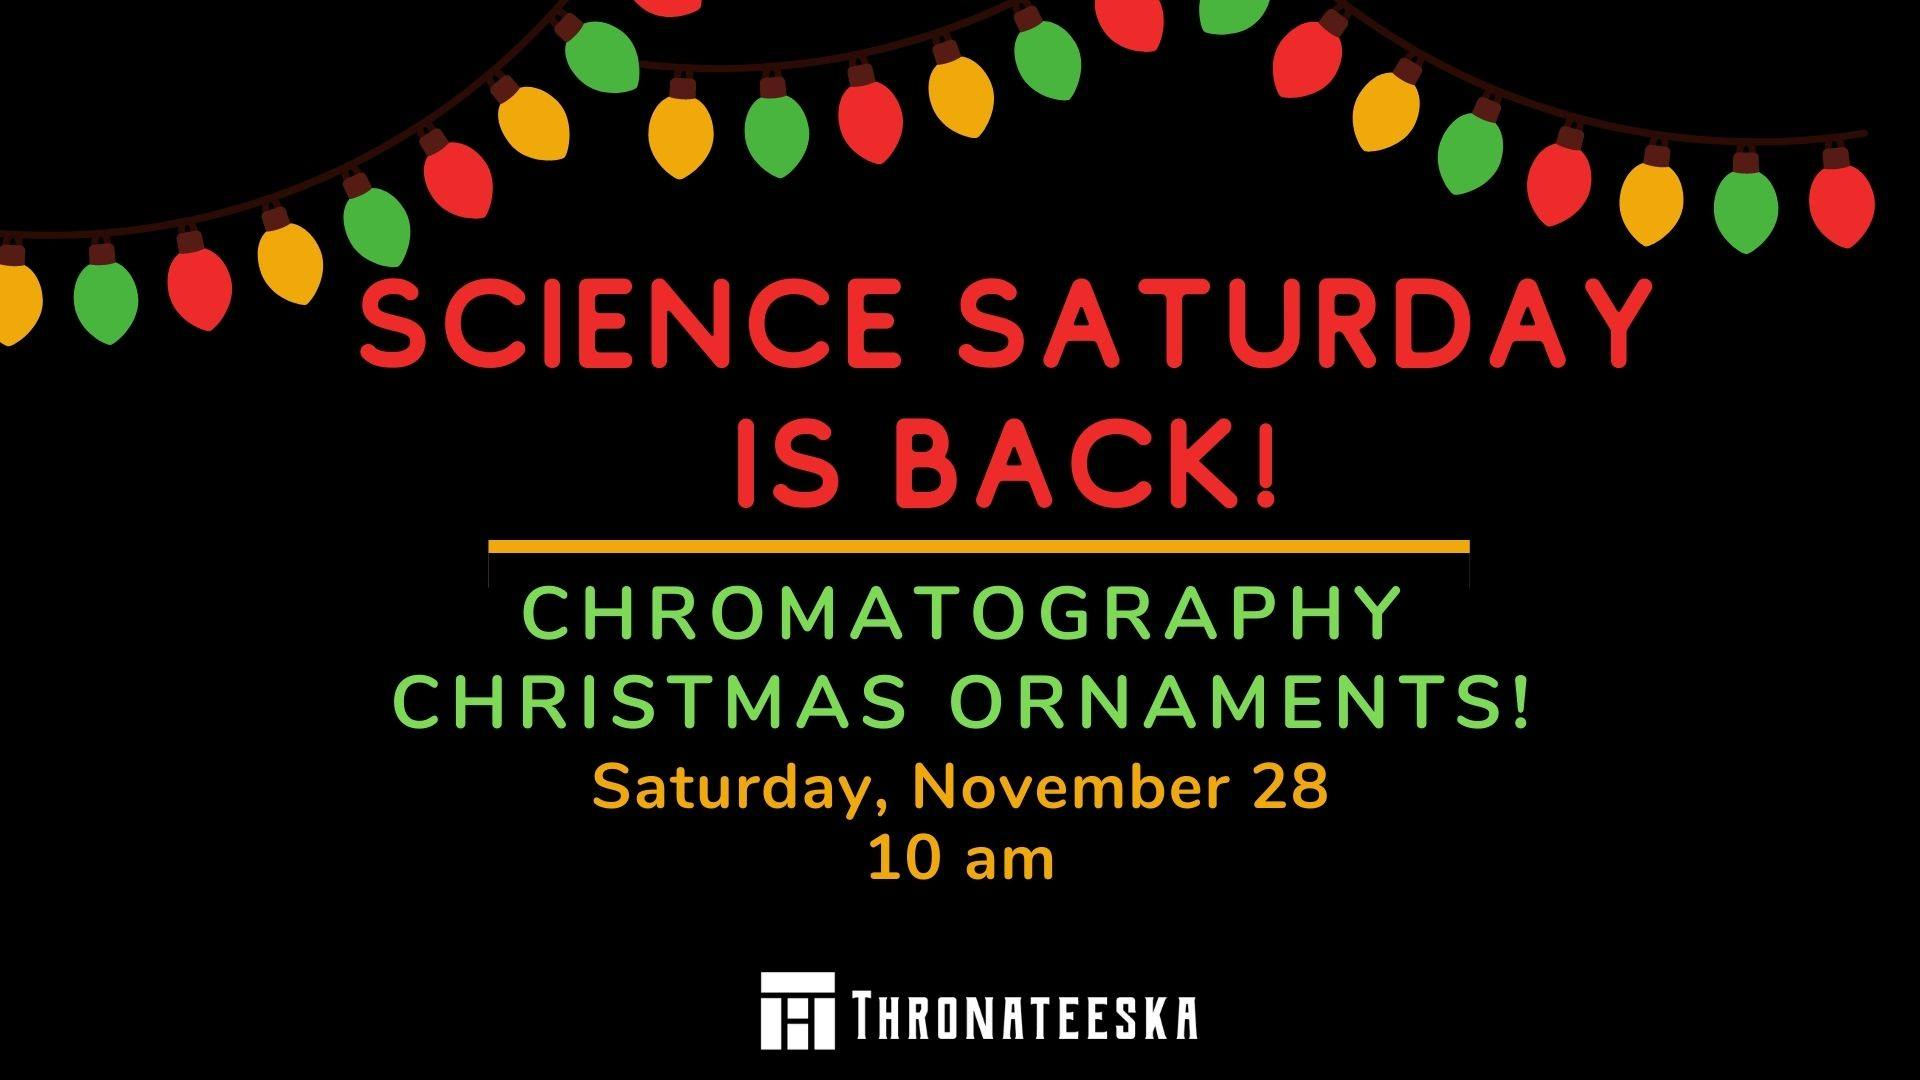 Science Saturday: Chromatography Christmas Ornaments